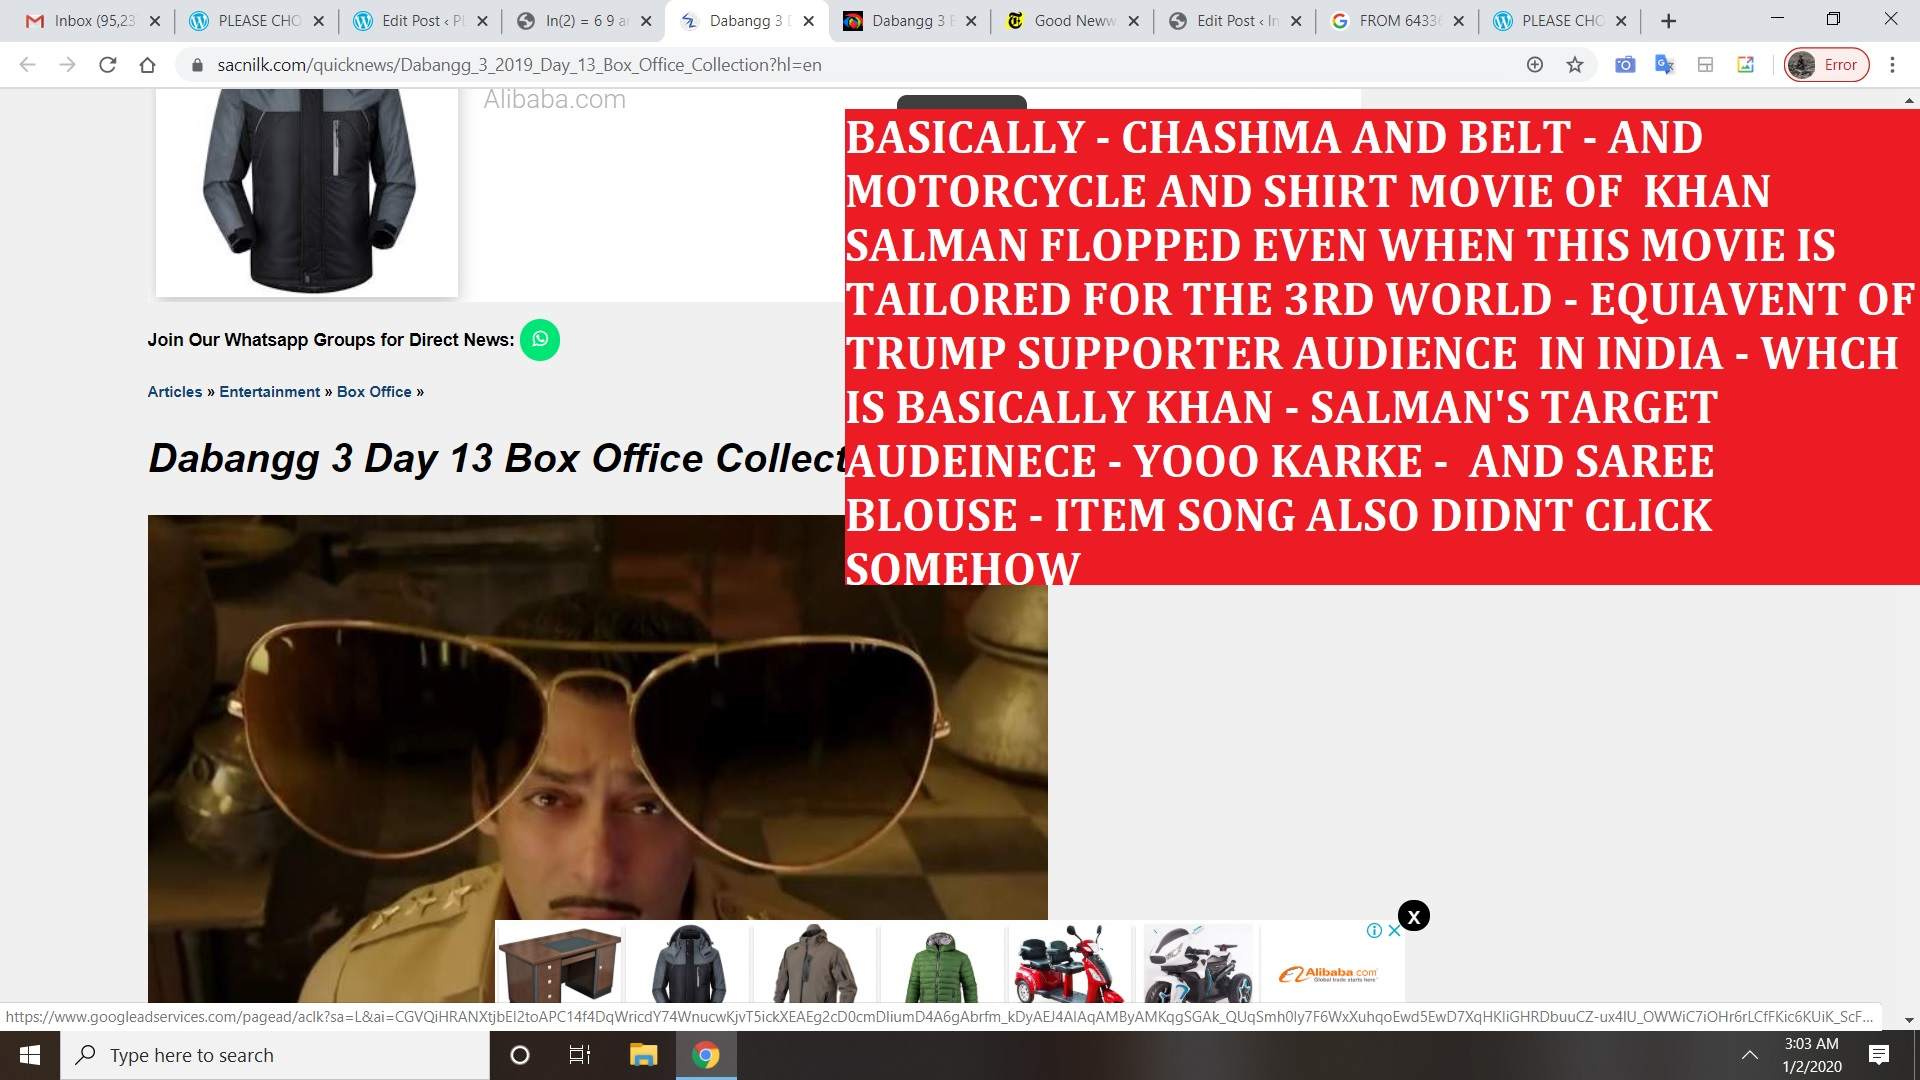 BASICALLY - CHASHMA AND BELT - AND MOTORCYCLE AND SHIRT MOVIE OF KHAN SALMAN FLOPPED EVEN WHEN THIS MOVIE IS TAILORED FOR THE 3RD WORLD - EQUIAVENT OF TRUMP SUPPORTER AUDIENCE IN INDIA -